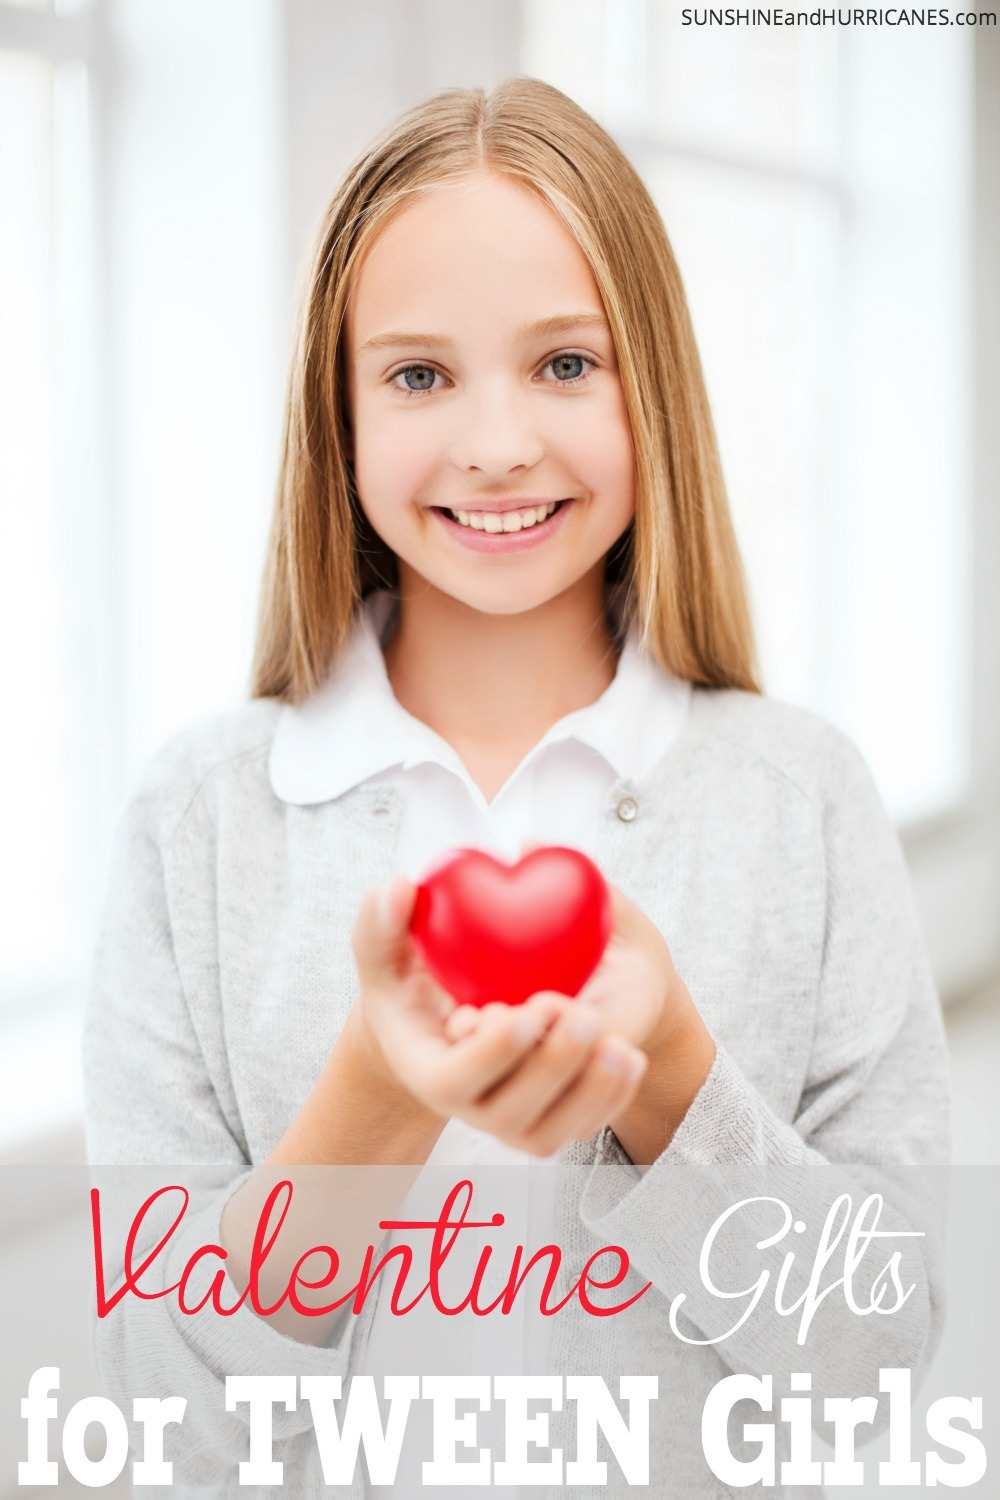 Your tween girl may be a little more spice than sweet these days, but she'll still appreciate these thoughtful tokens of appreciate that show you still want to be her Valentine. Valentine Gifts for Tween Girls.